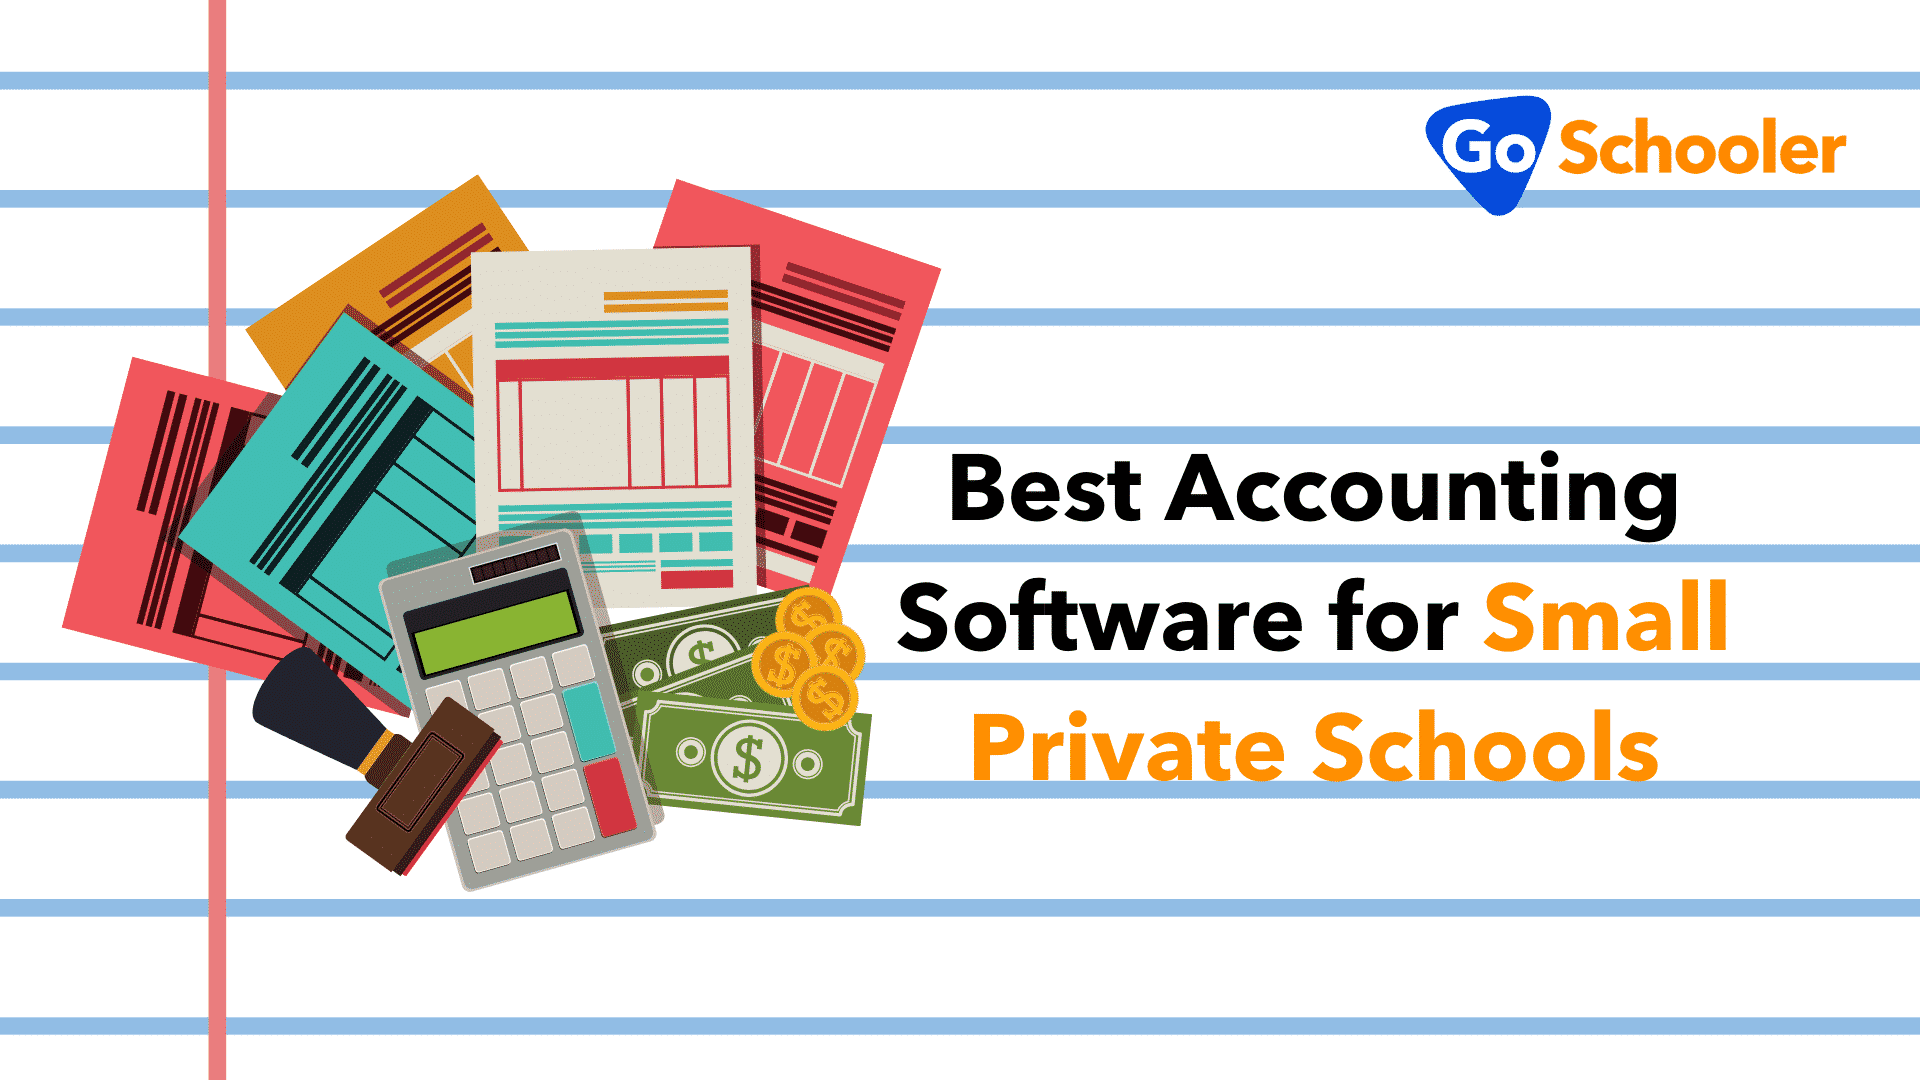 best accounting software for small private schools